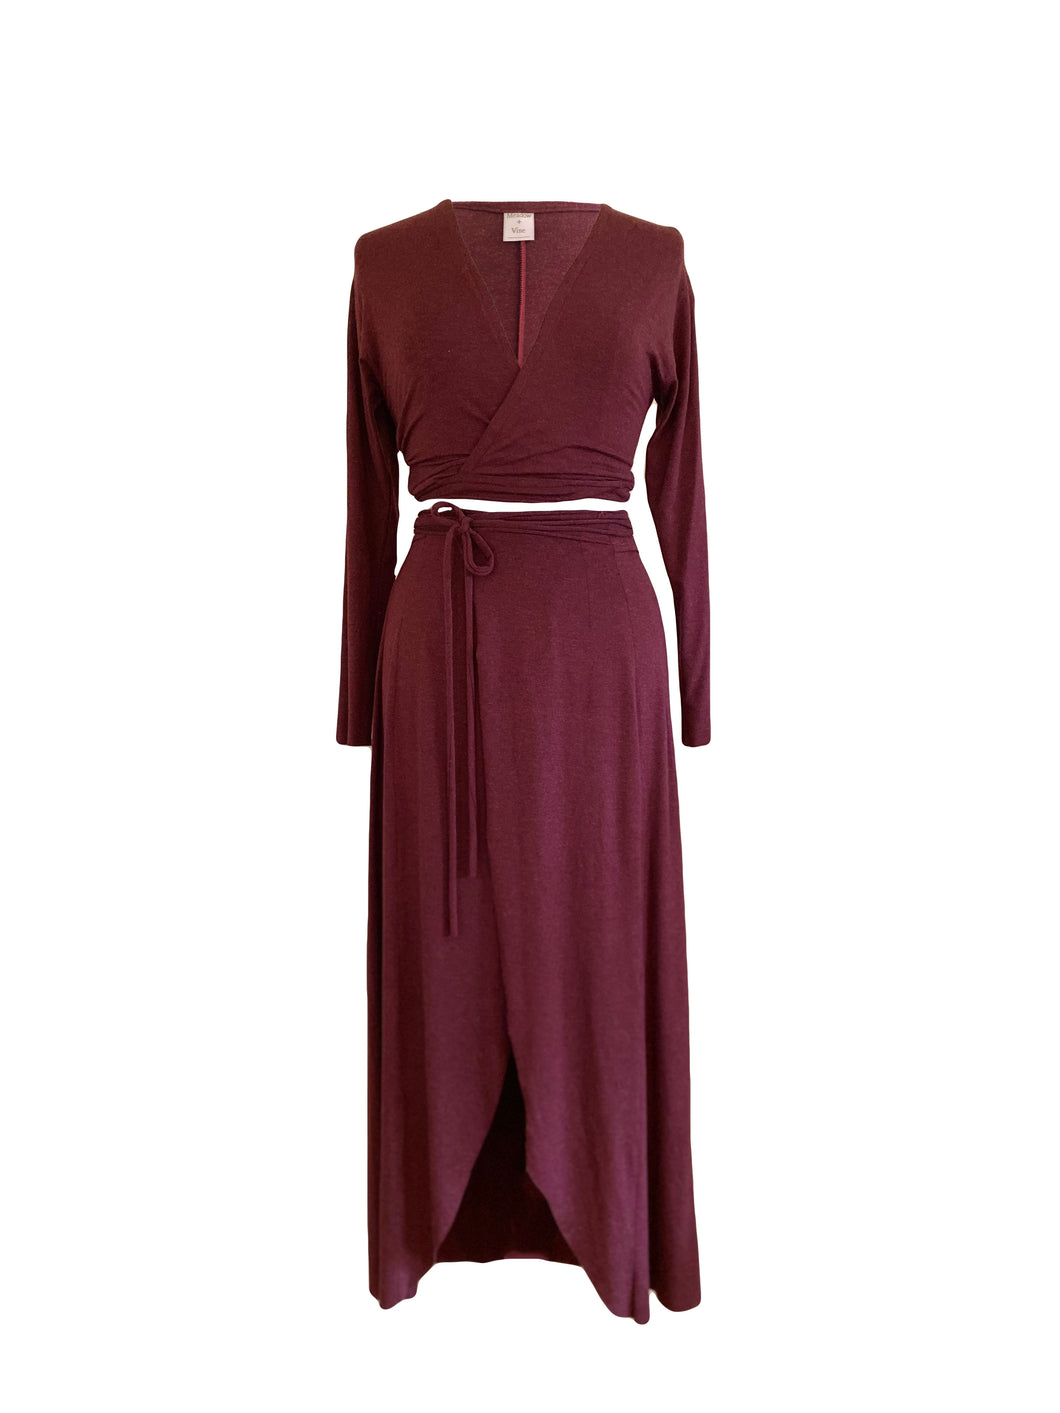 Ethically made co ord, stretch wrap maxi skirt with front split and tie waist